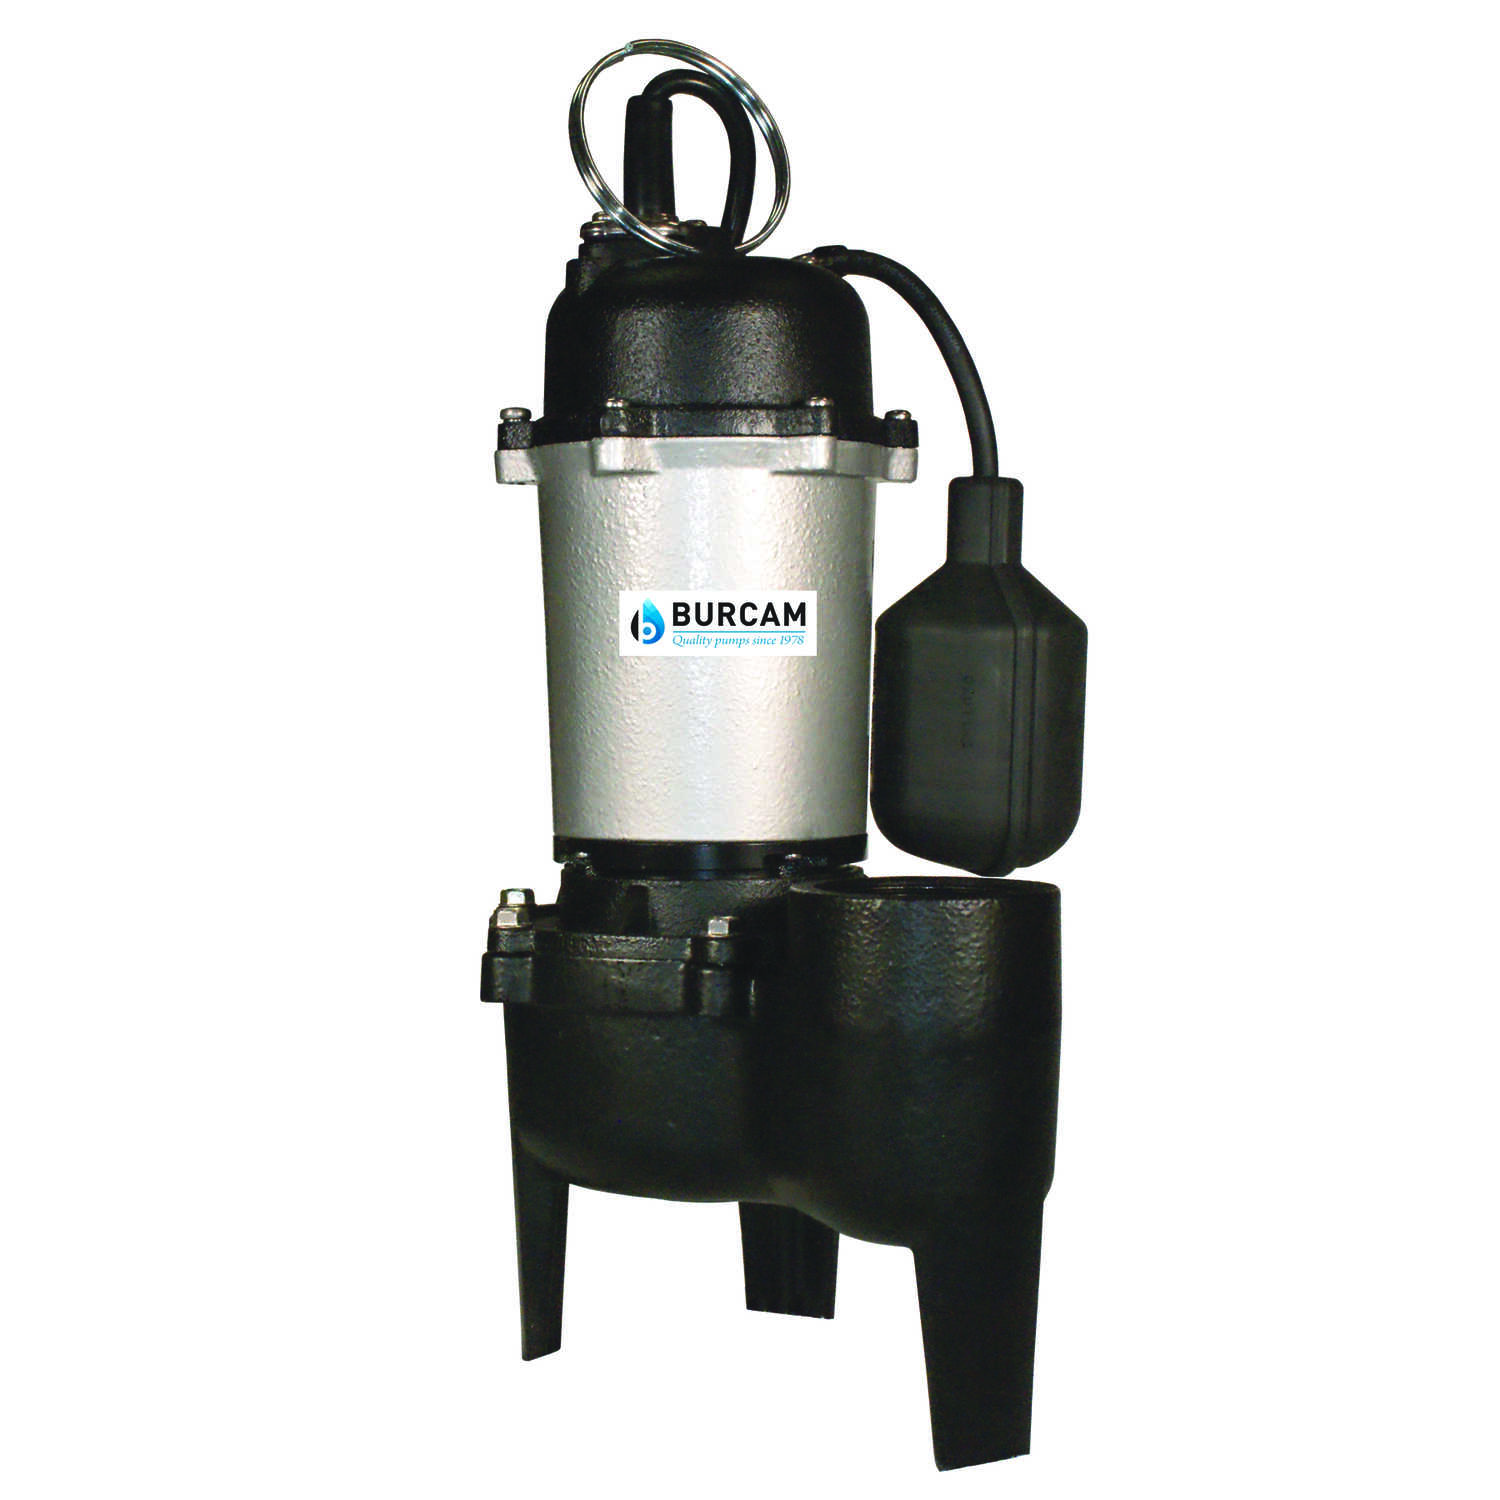 Burcam  1/2 hp 60 gph Cast Iron  Submersible Sewage Ejector Pump